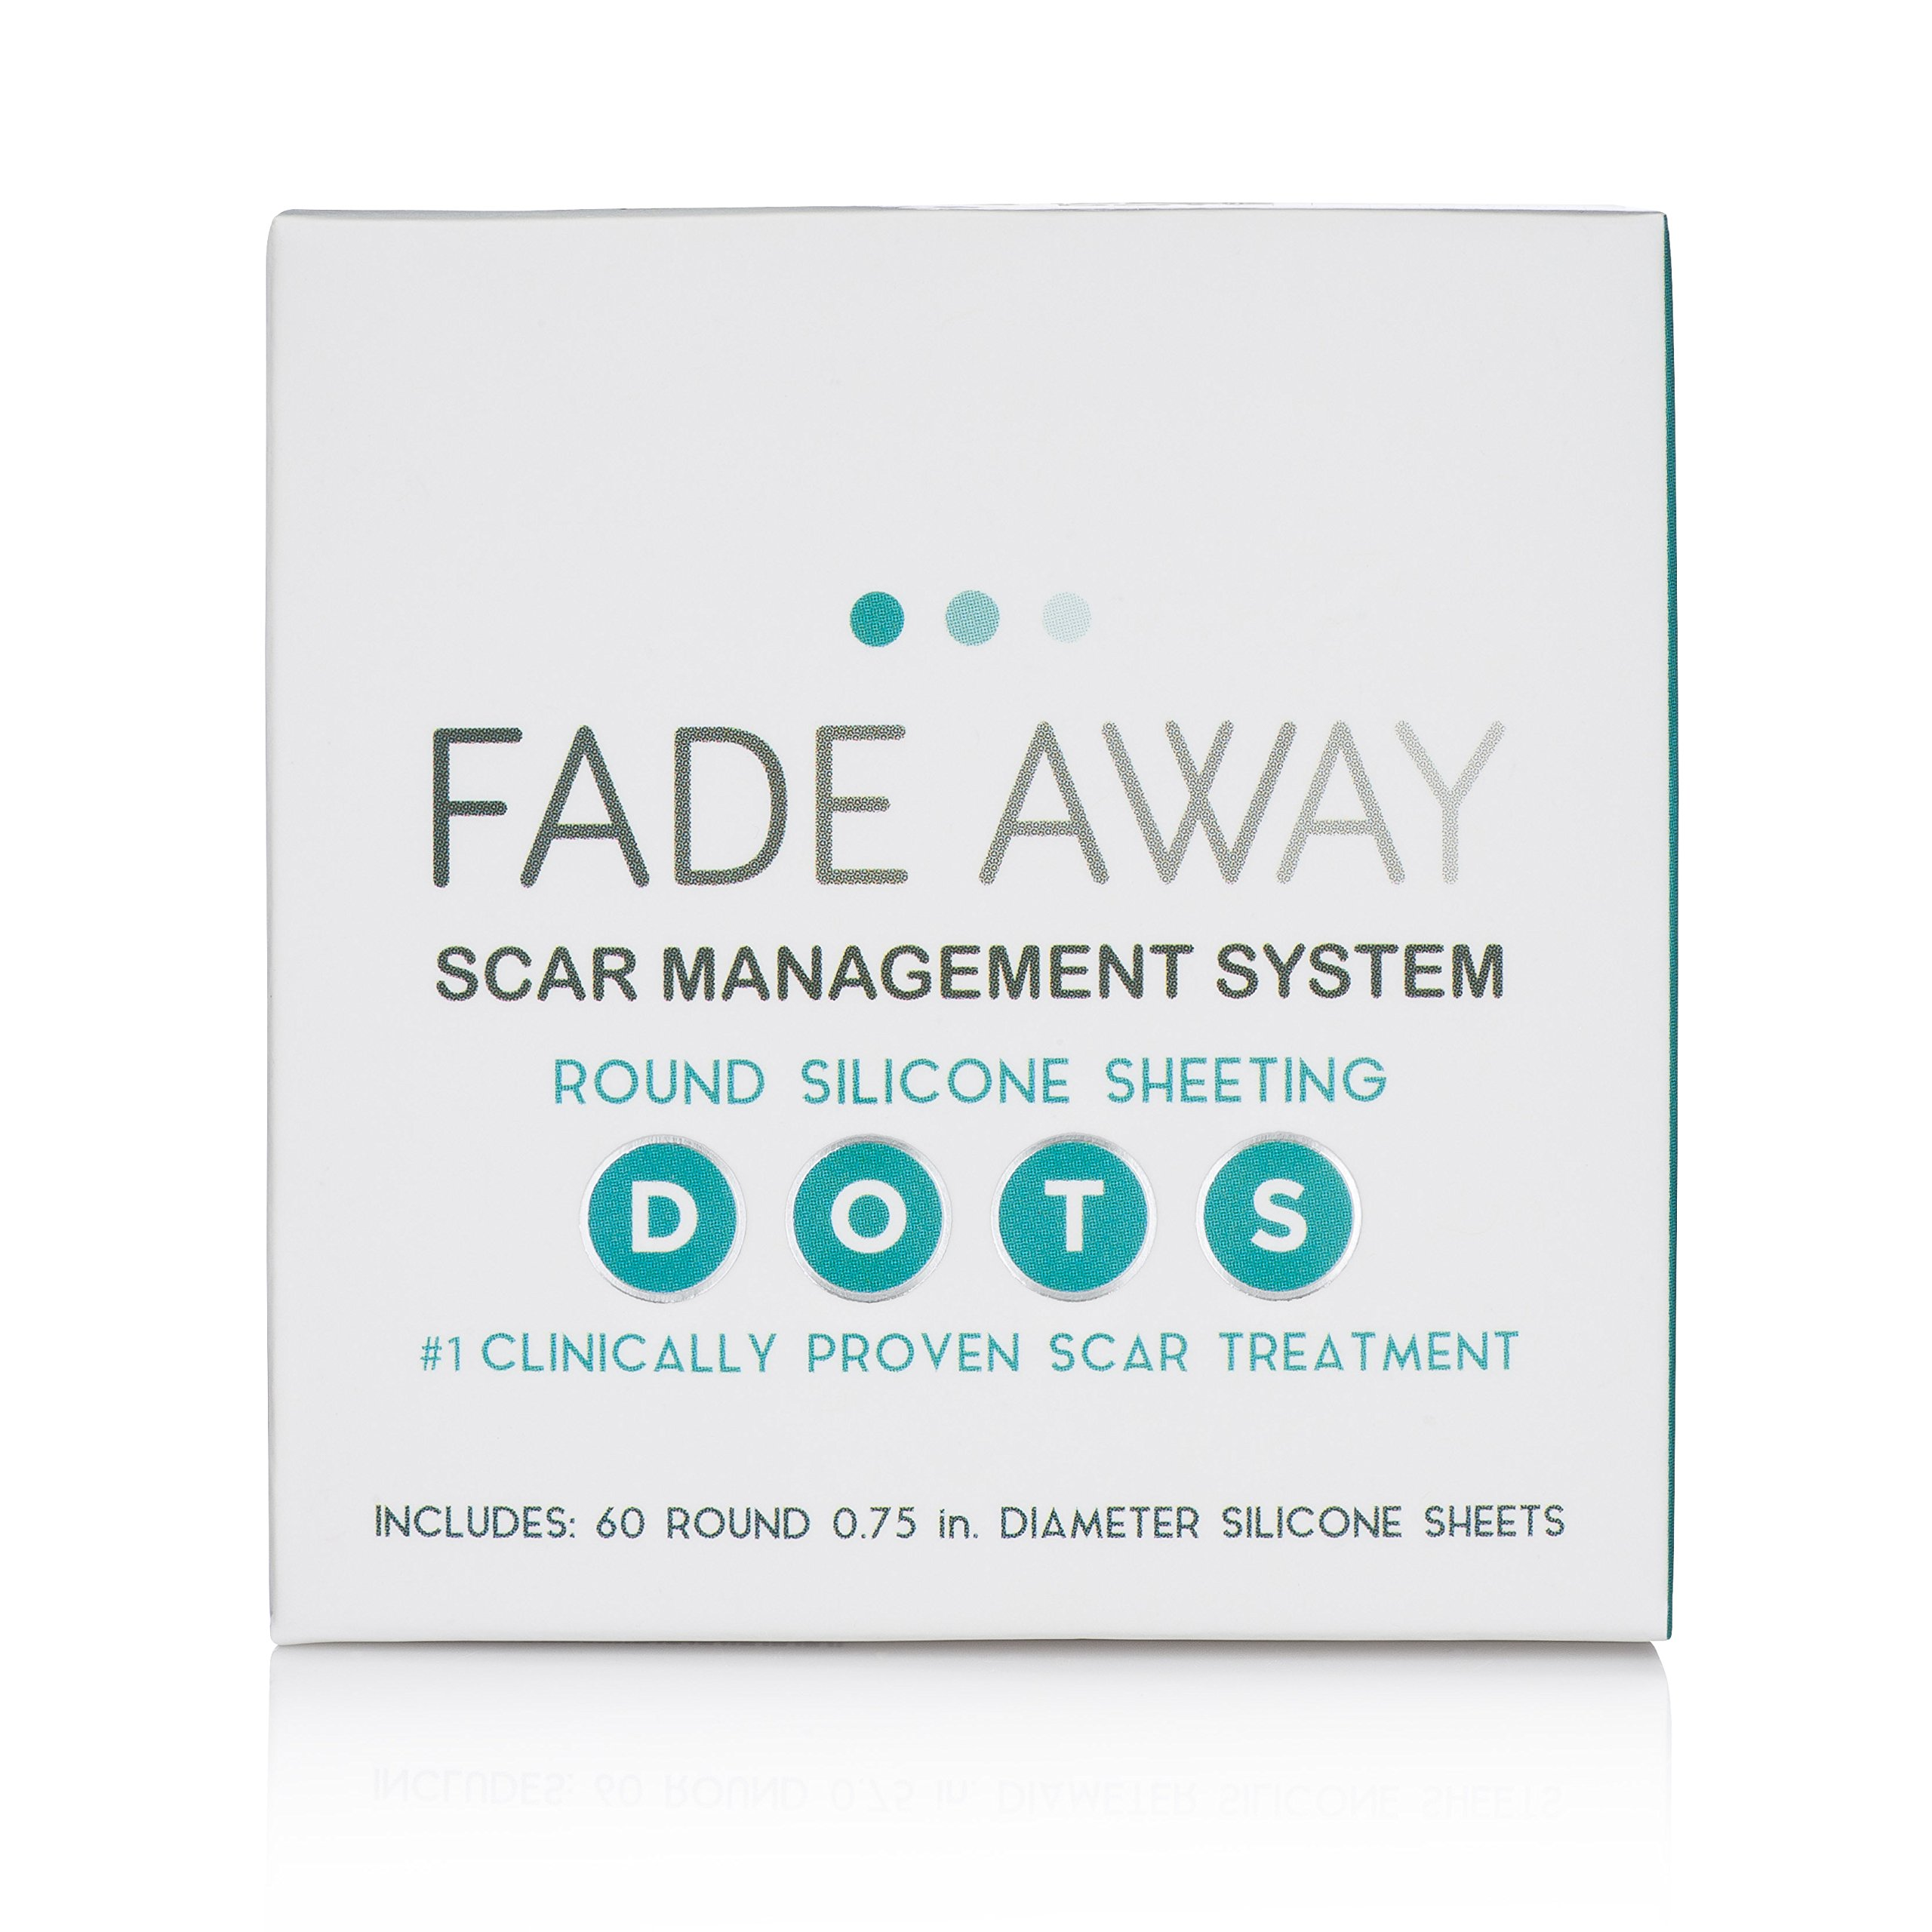 Fade Away Silicone Scar Treatment Dots by Fade Away